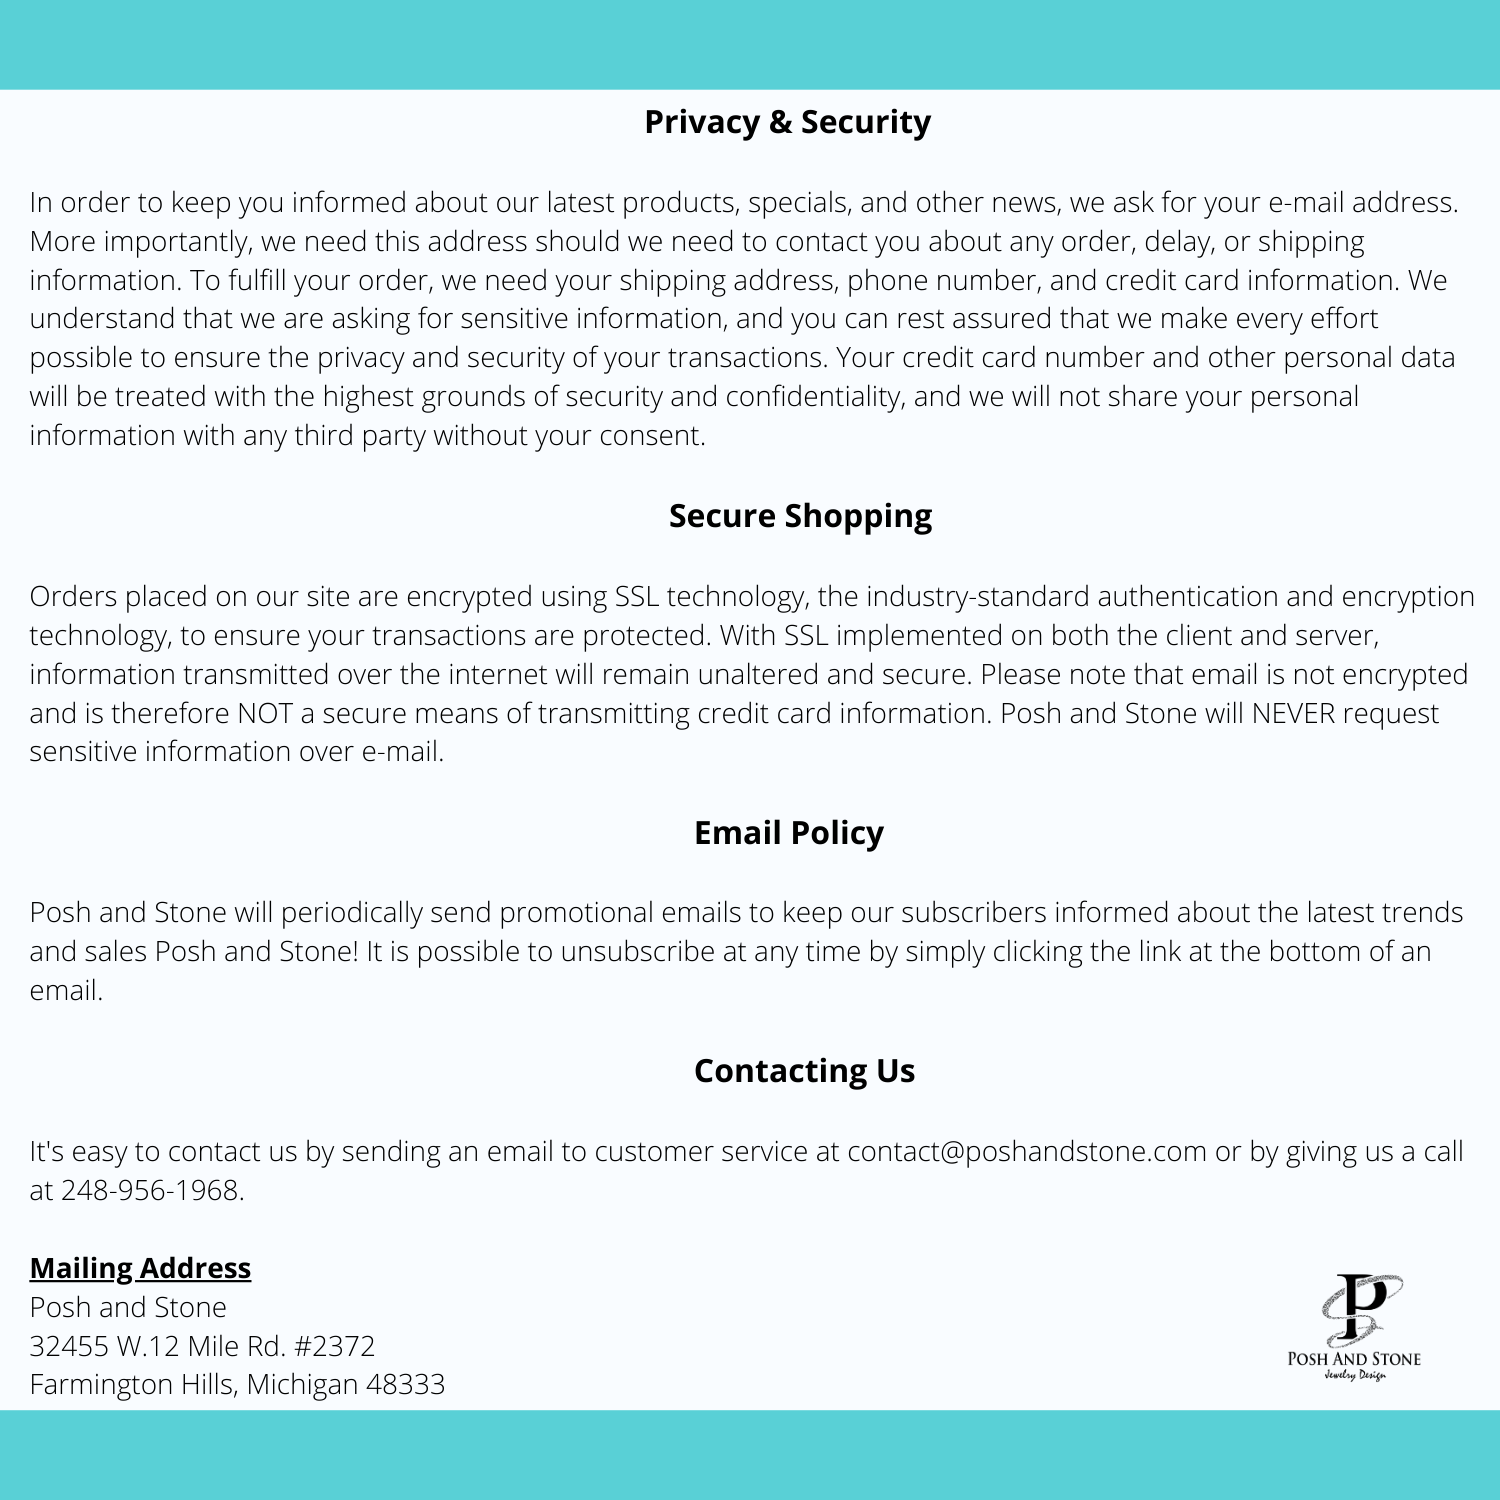 privacy-secuity-1-.png